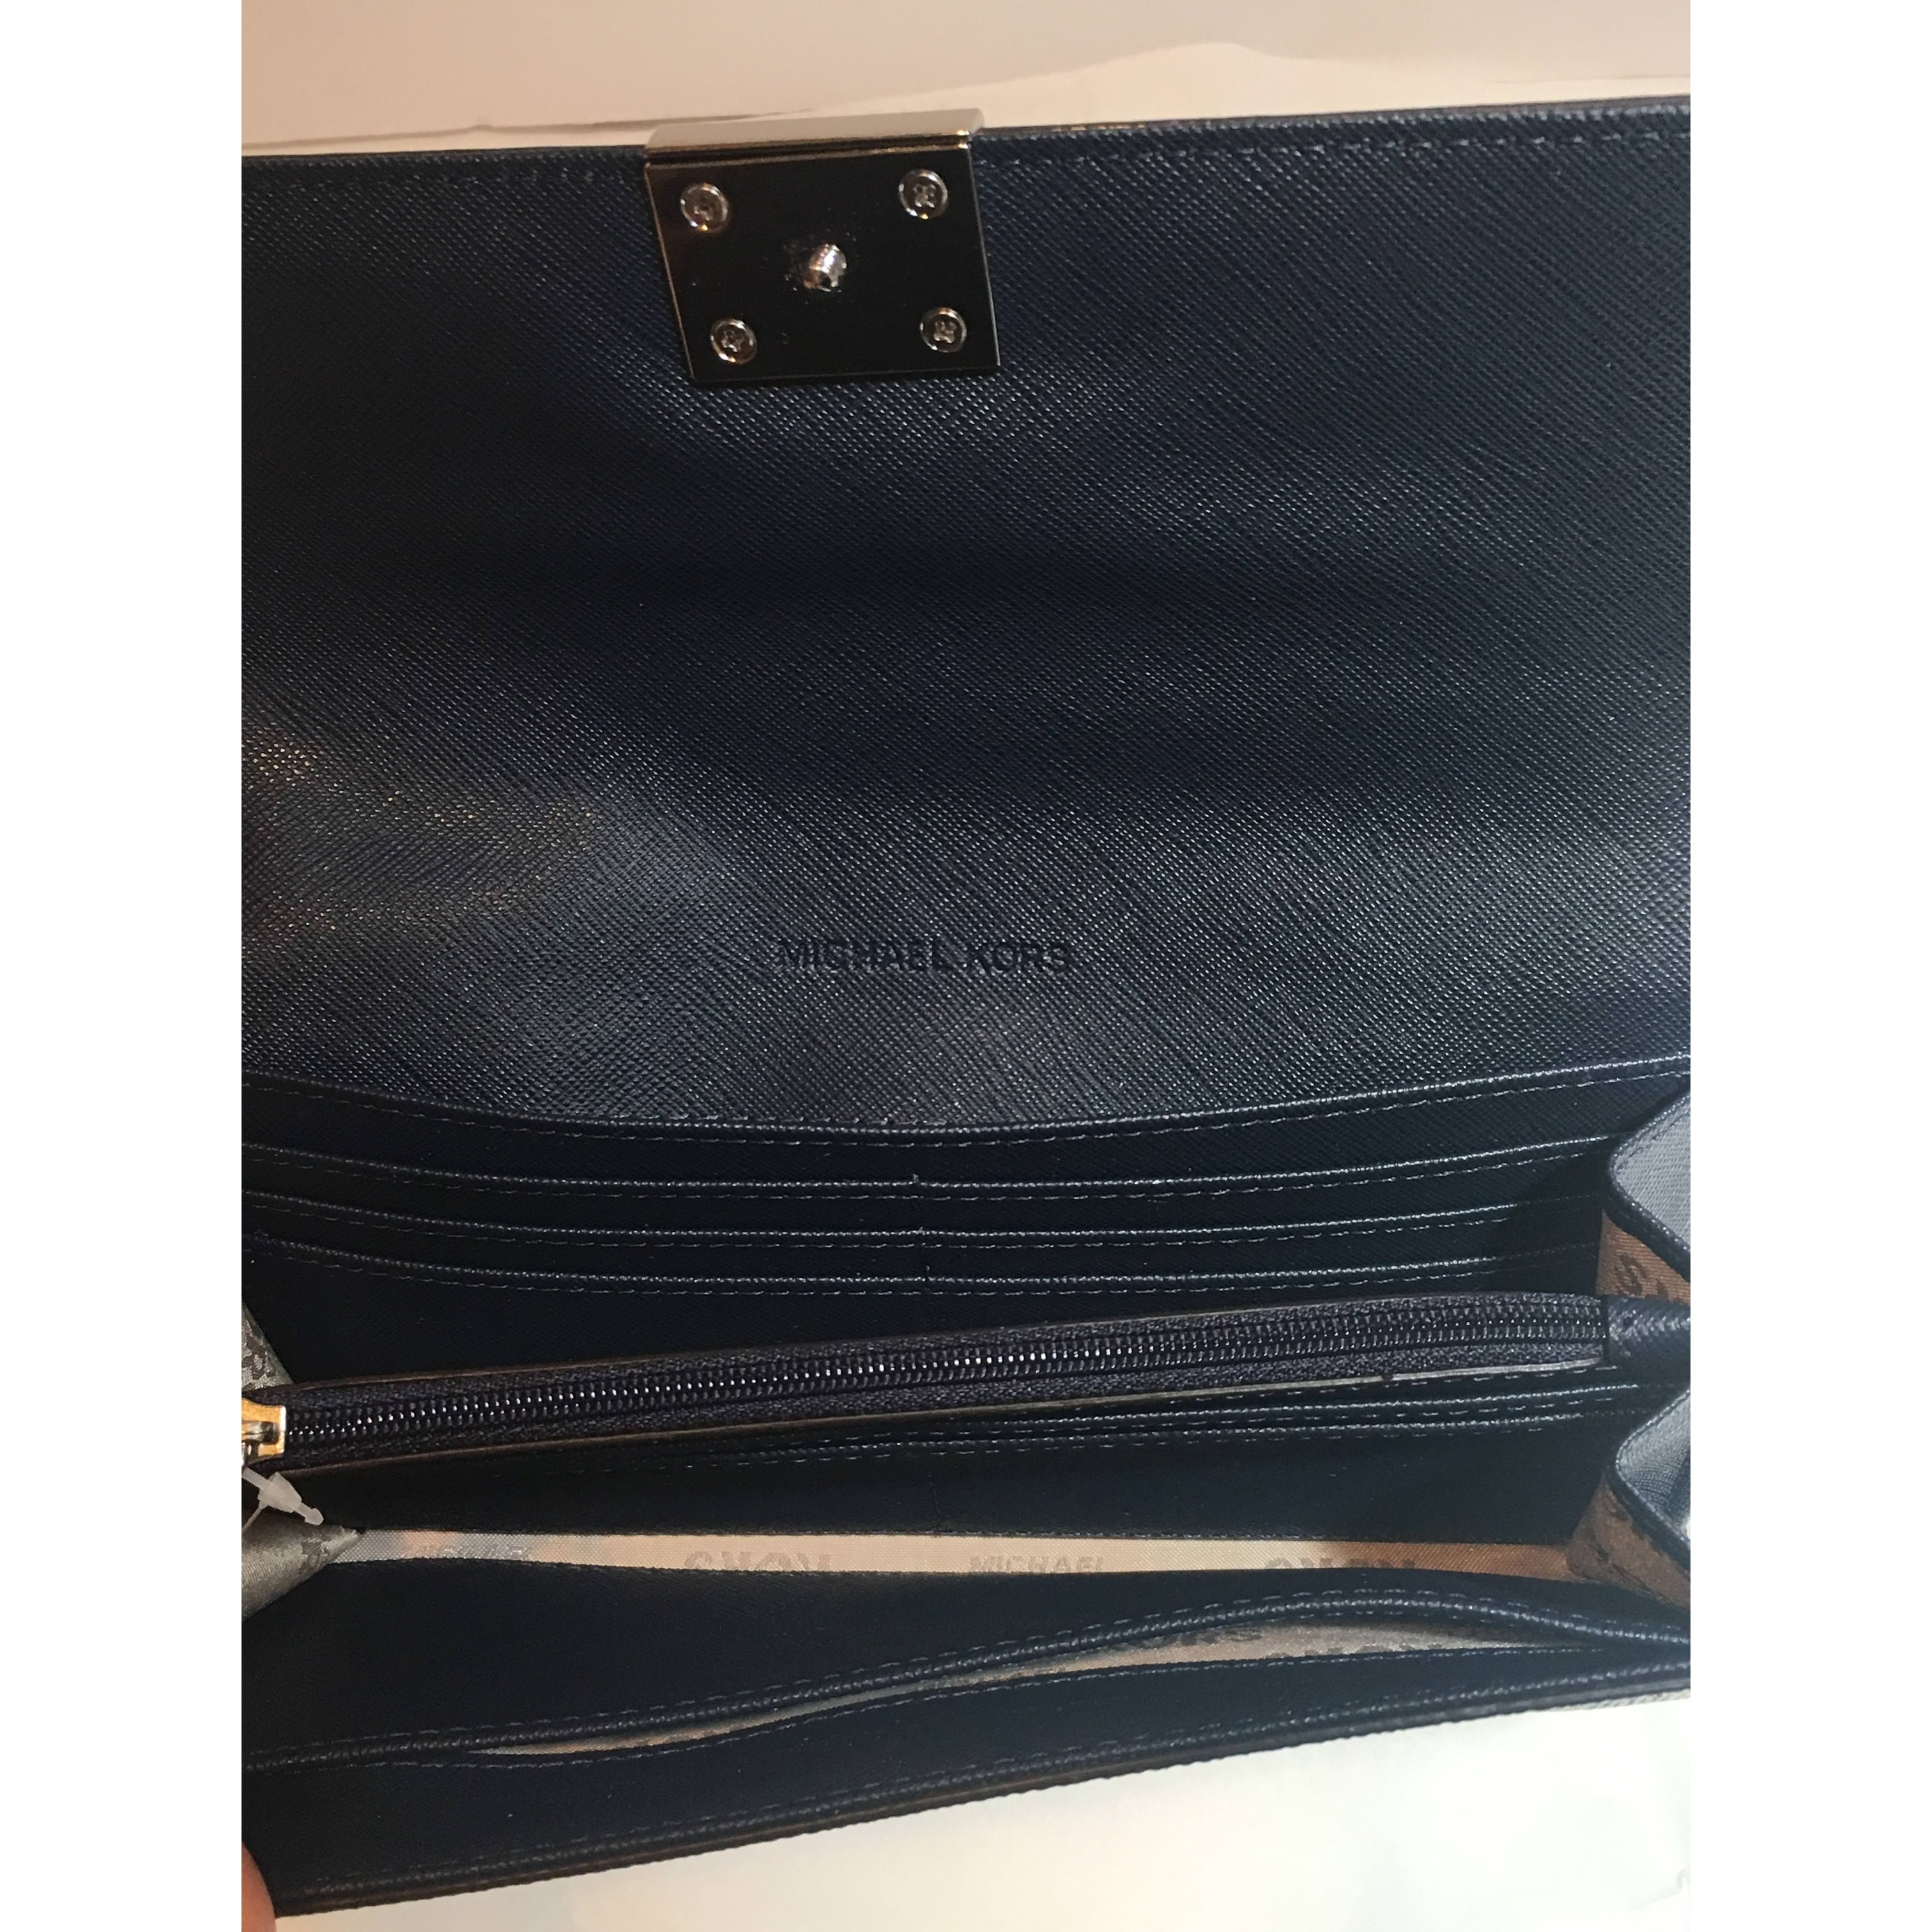 87c6a2e716bb Shop Michael Kors Mindy Carryall PVC Flap Wallet Clutch - Free Shipping  Today - Overstock - 22465309